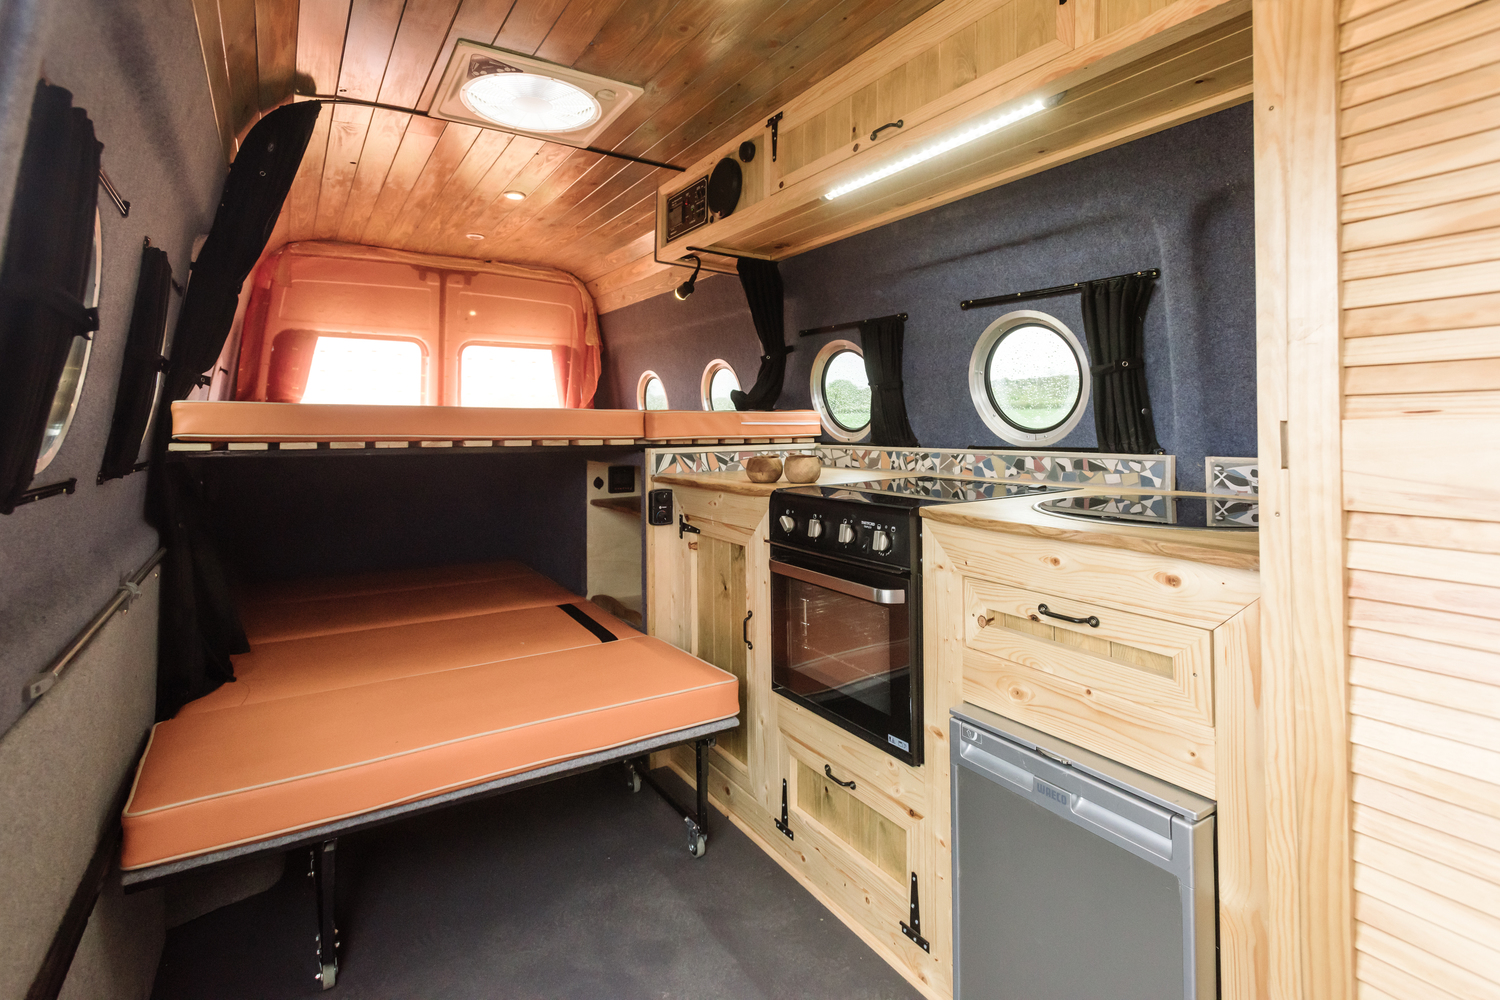 Love Campers Sprinter Conversion - Interior Beds